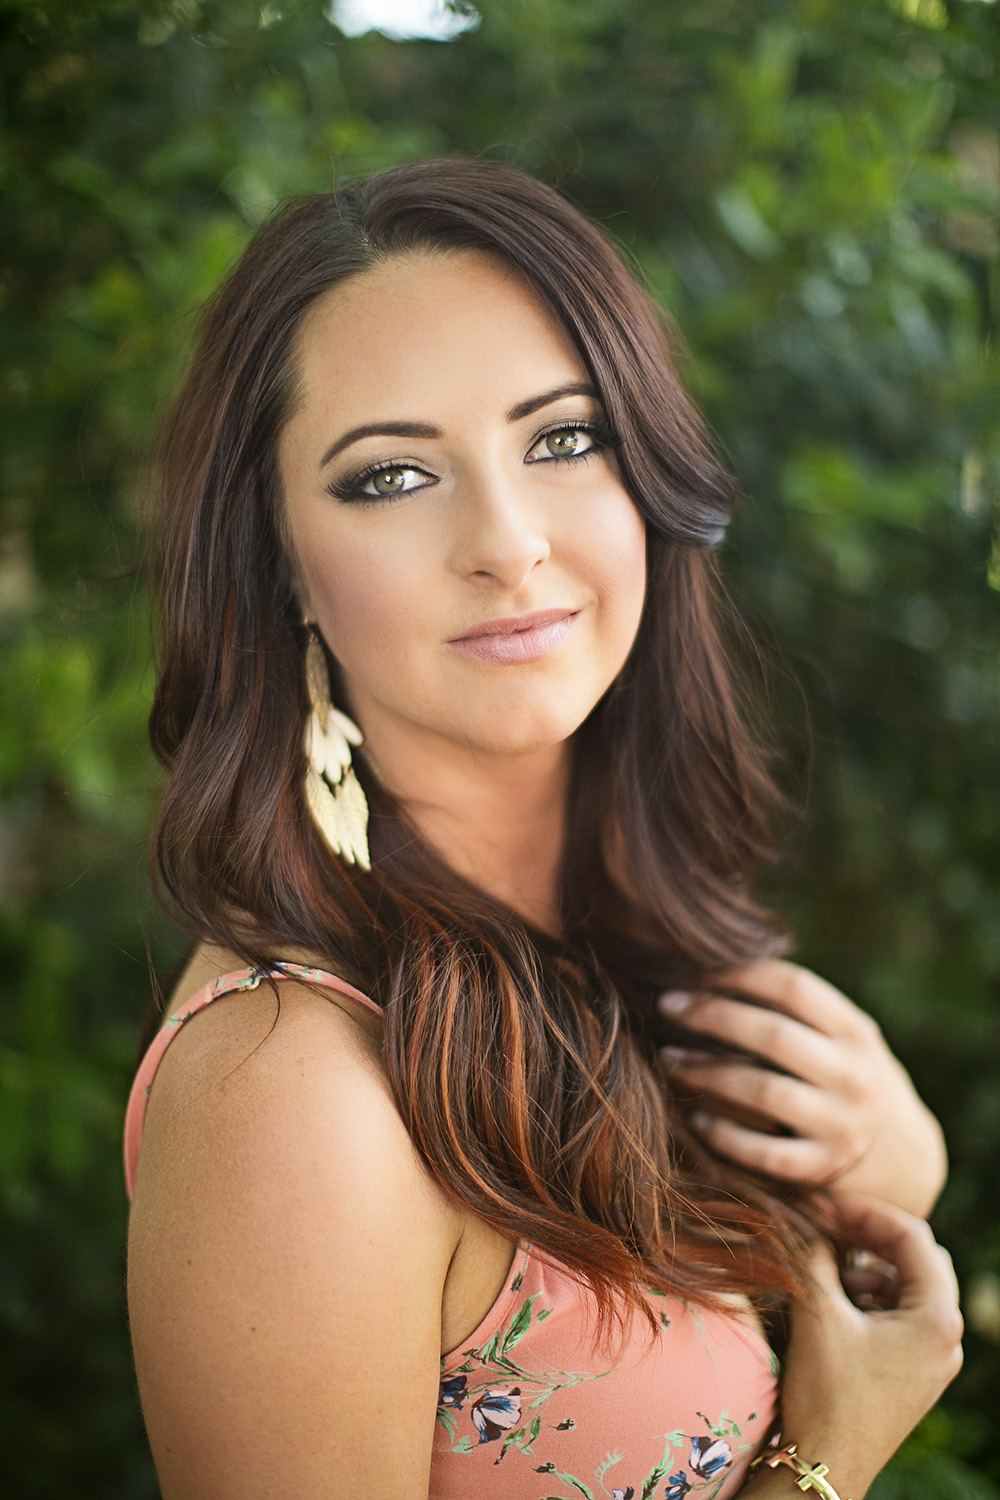 Meet Brooke Hayes - LMP's professional makeup artist and hairstylist, Brooke Hayes, uses only the best high definition camera ready products to make you look and feel fabulous for your senior portrait! With the use of airbrush makeup you will have flawless, long lasting and lightweight coverage. Unlike traditional makeup, airbrush makeup is sure to save you from the West Texas heat and wind!